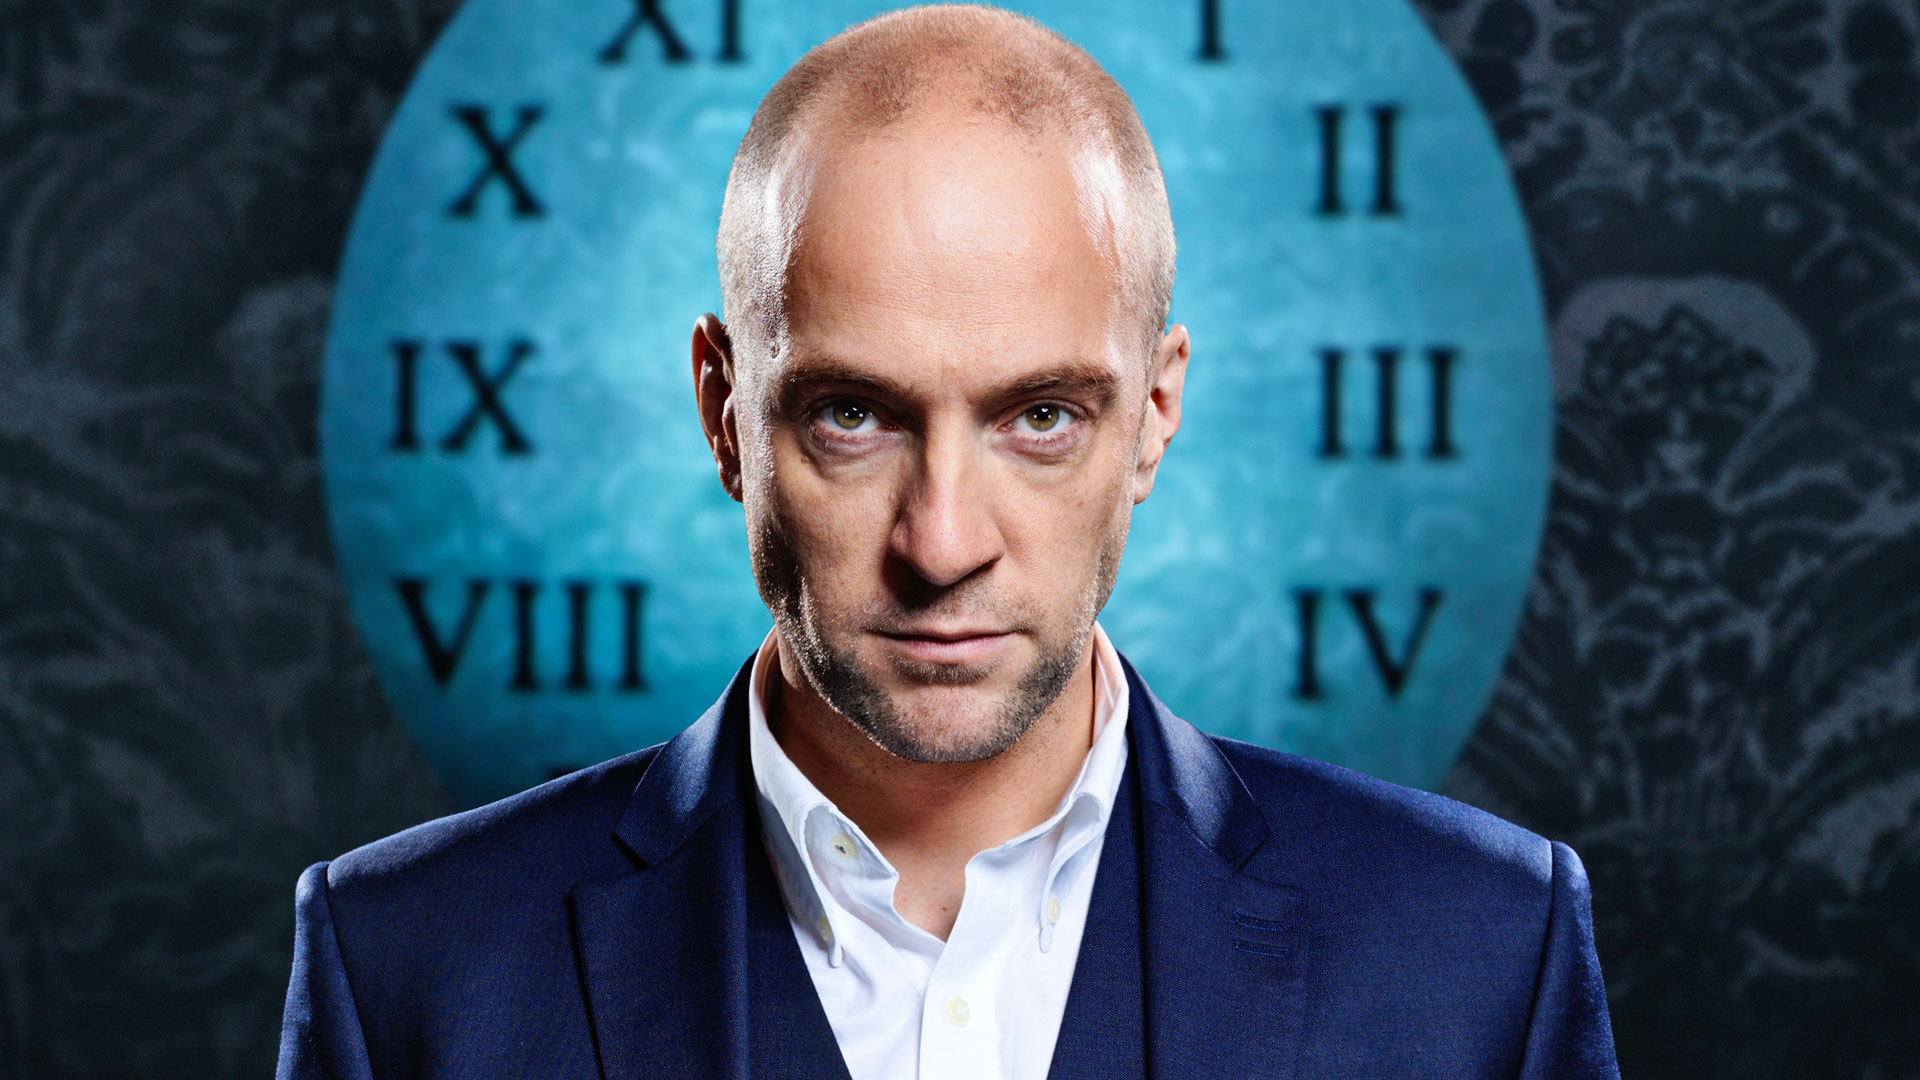 DERREN BROWN ITA EPUB DOWNLOAD